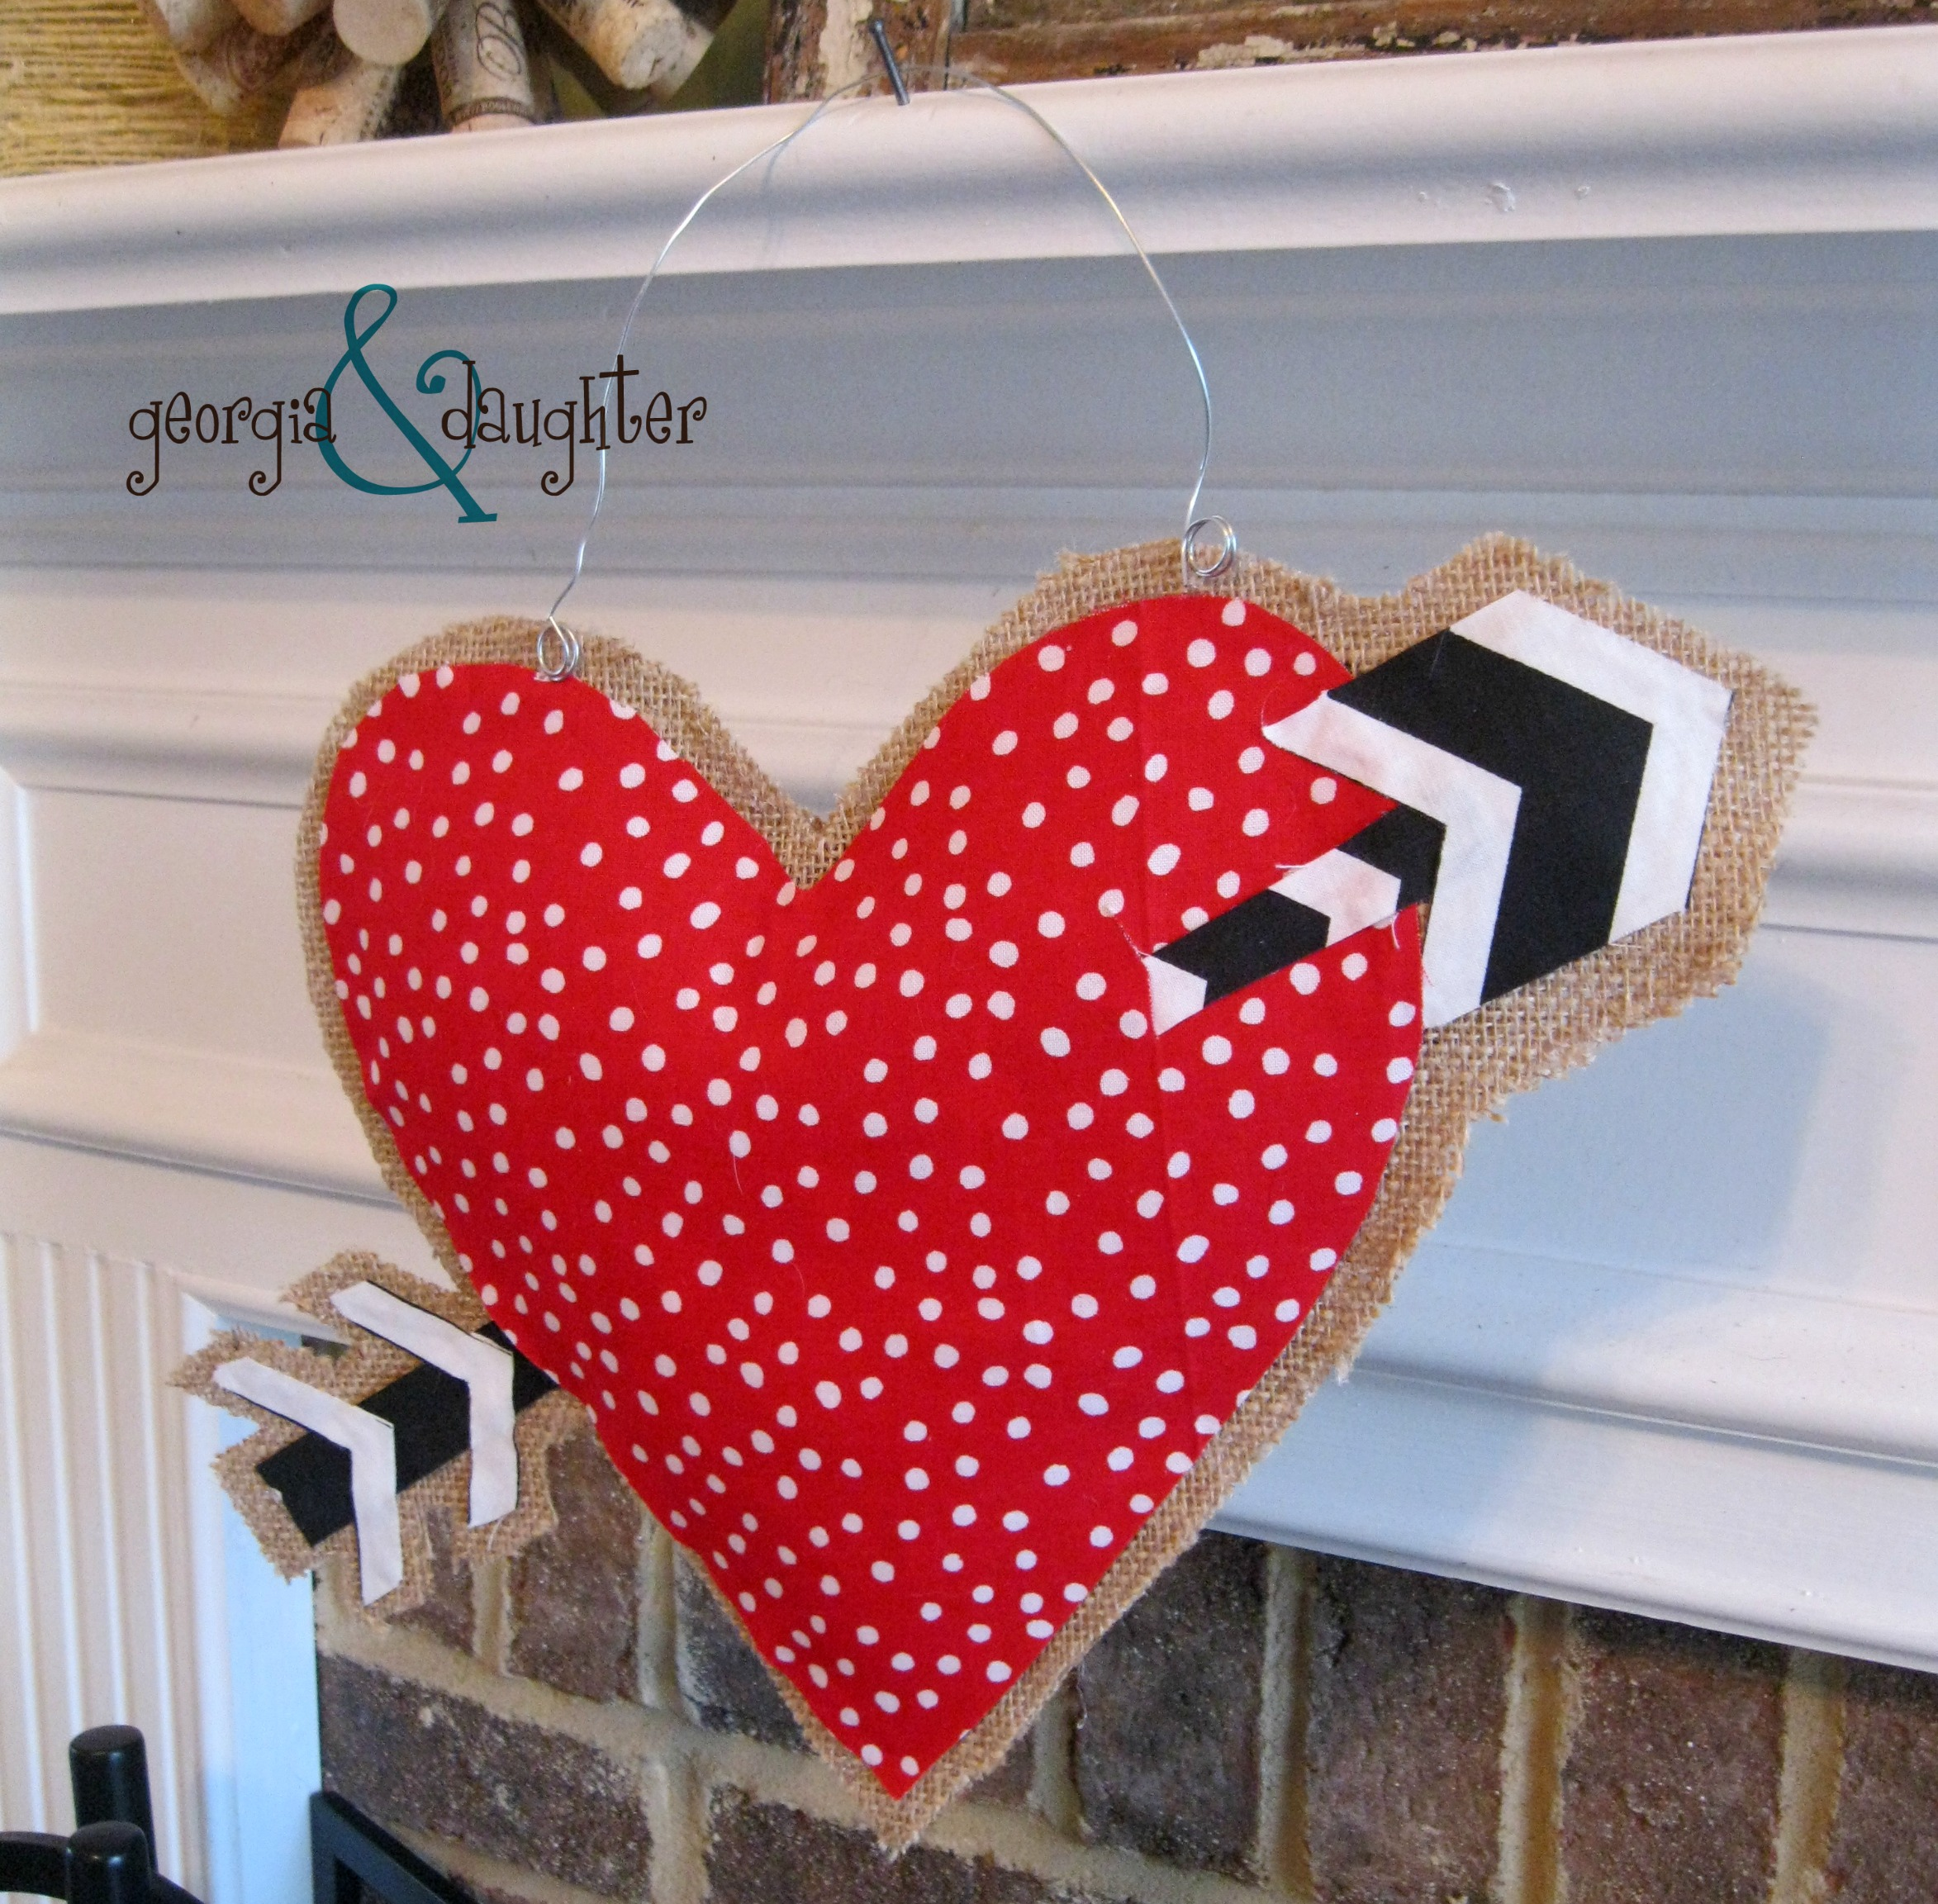 georgia daughter diy burlap heart door hanger